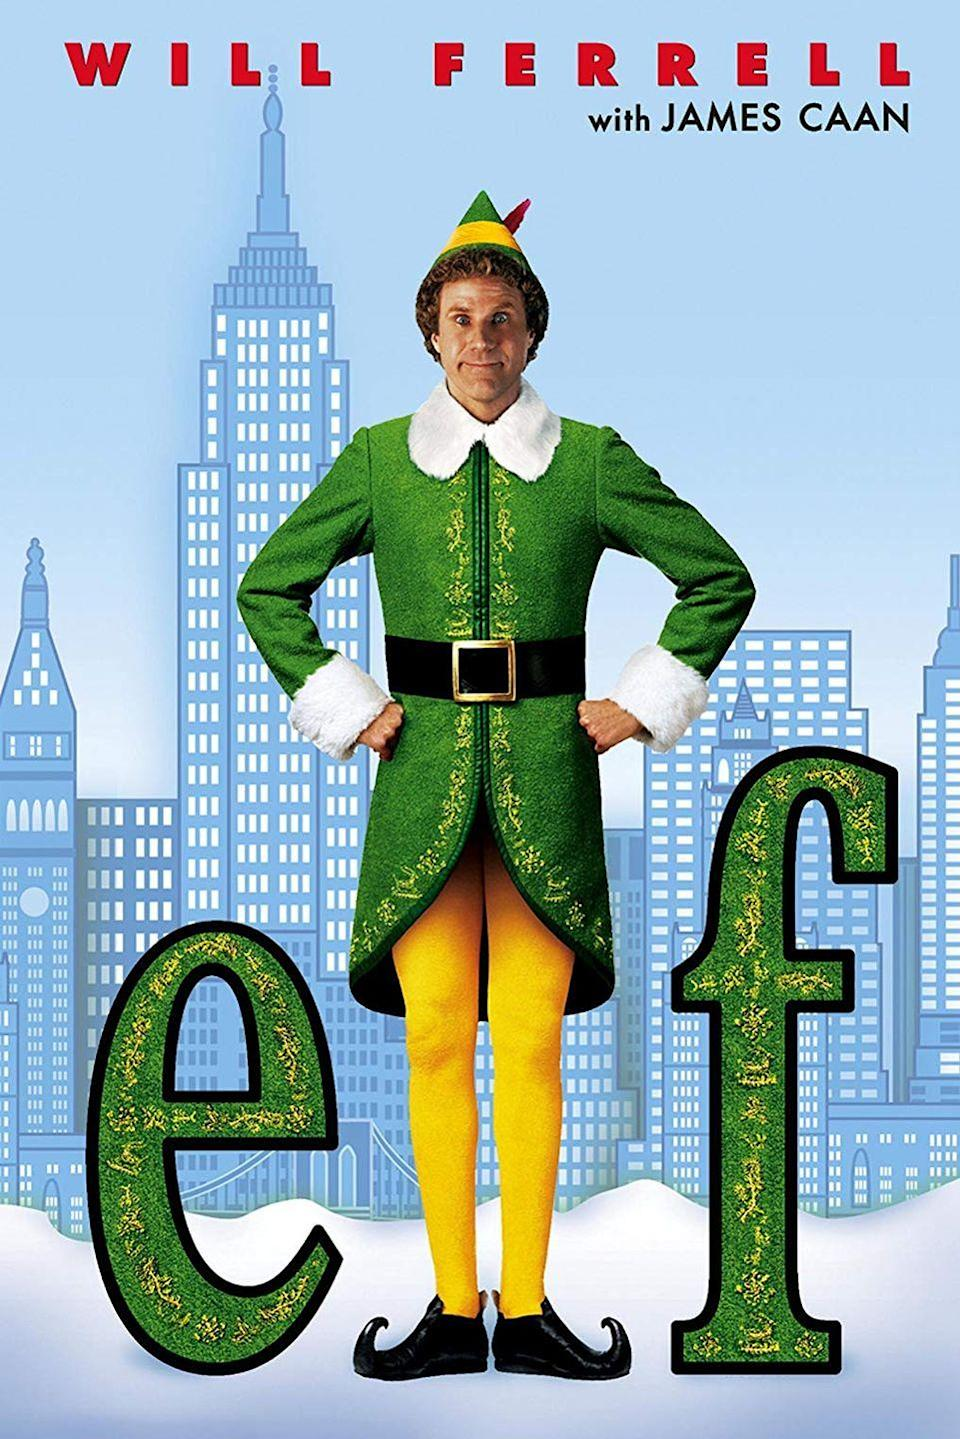 """<p>Santa!!! If you have a close relationship with the Big Guy at the North Pole, then you might be more elf-like than you ever thought! Even though this movie only came out in 2003, its tale of a human man raised as an elf making his way in New York City has quickly become a holiday classic.</p><p><a class=""""link rapid-noclick-resp"""" href=""""https://www.amazon.com/Elf-Will-Ferrell/dp/B0091VTNZC/?tag=syn-yahoo-20&ascsubtag=%5Bartid%7C10055.g.1315%5Bsrc%7Cyahoo-us"""" rel=""""nofollow noopener"""" target=""""_blank"""" data-ylk=""""slk:WATCH NOW"""">WATCH NOW</a></p>"""